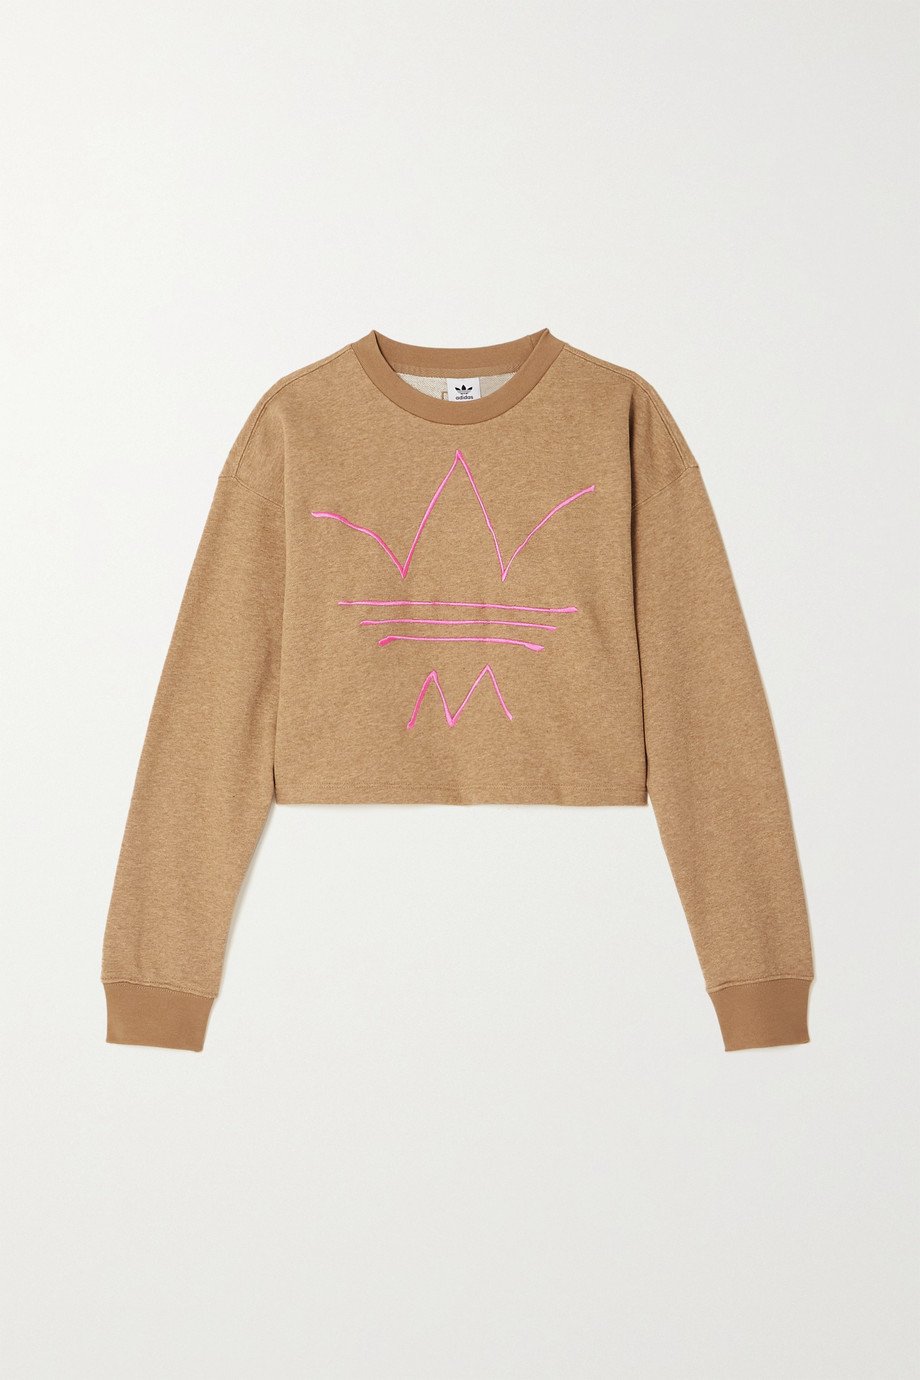 adidas Originals + Girls Are Awesome R.Y.V embroidered cotton-blend jersey sweatshirt